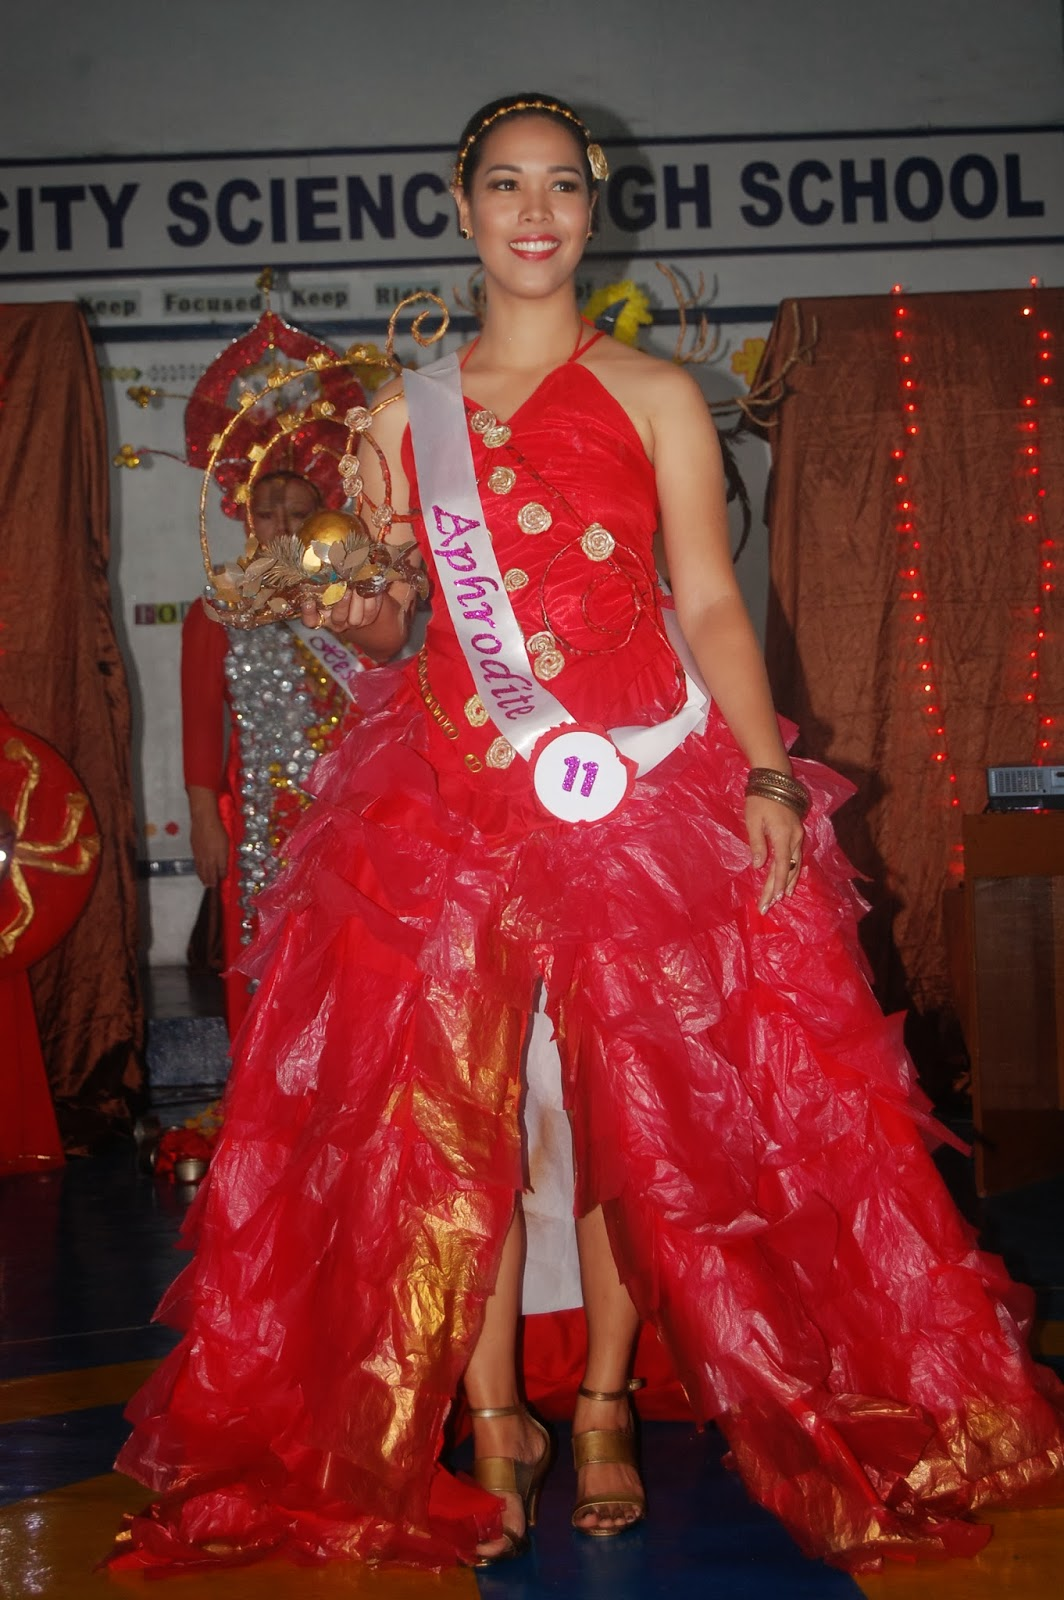 Greek Gods And Goddesses 2013 Wazzup Pilipinas News And Events